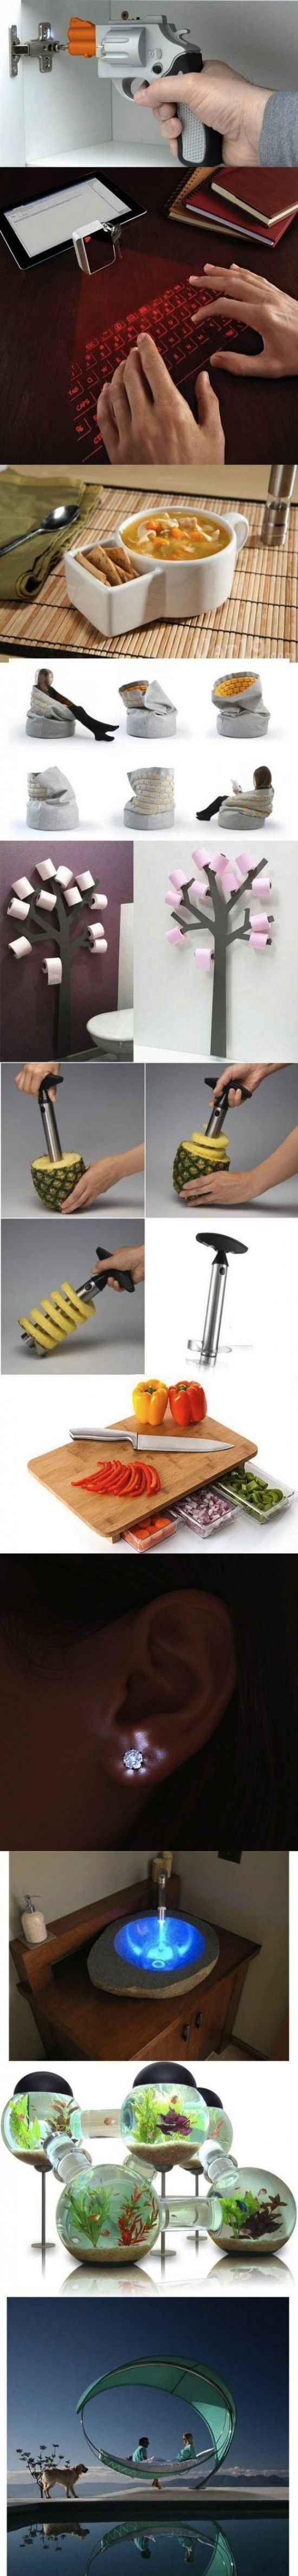 Super cool inventions